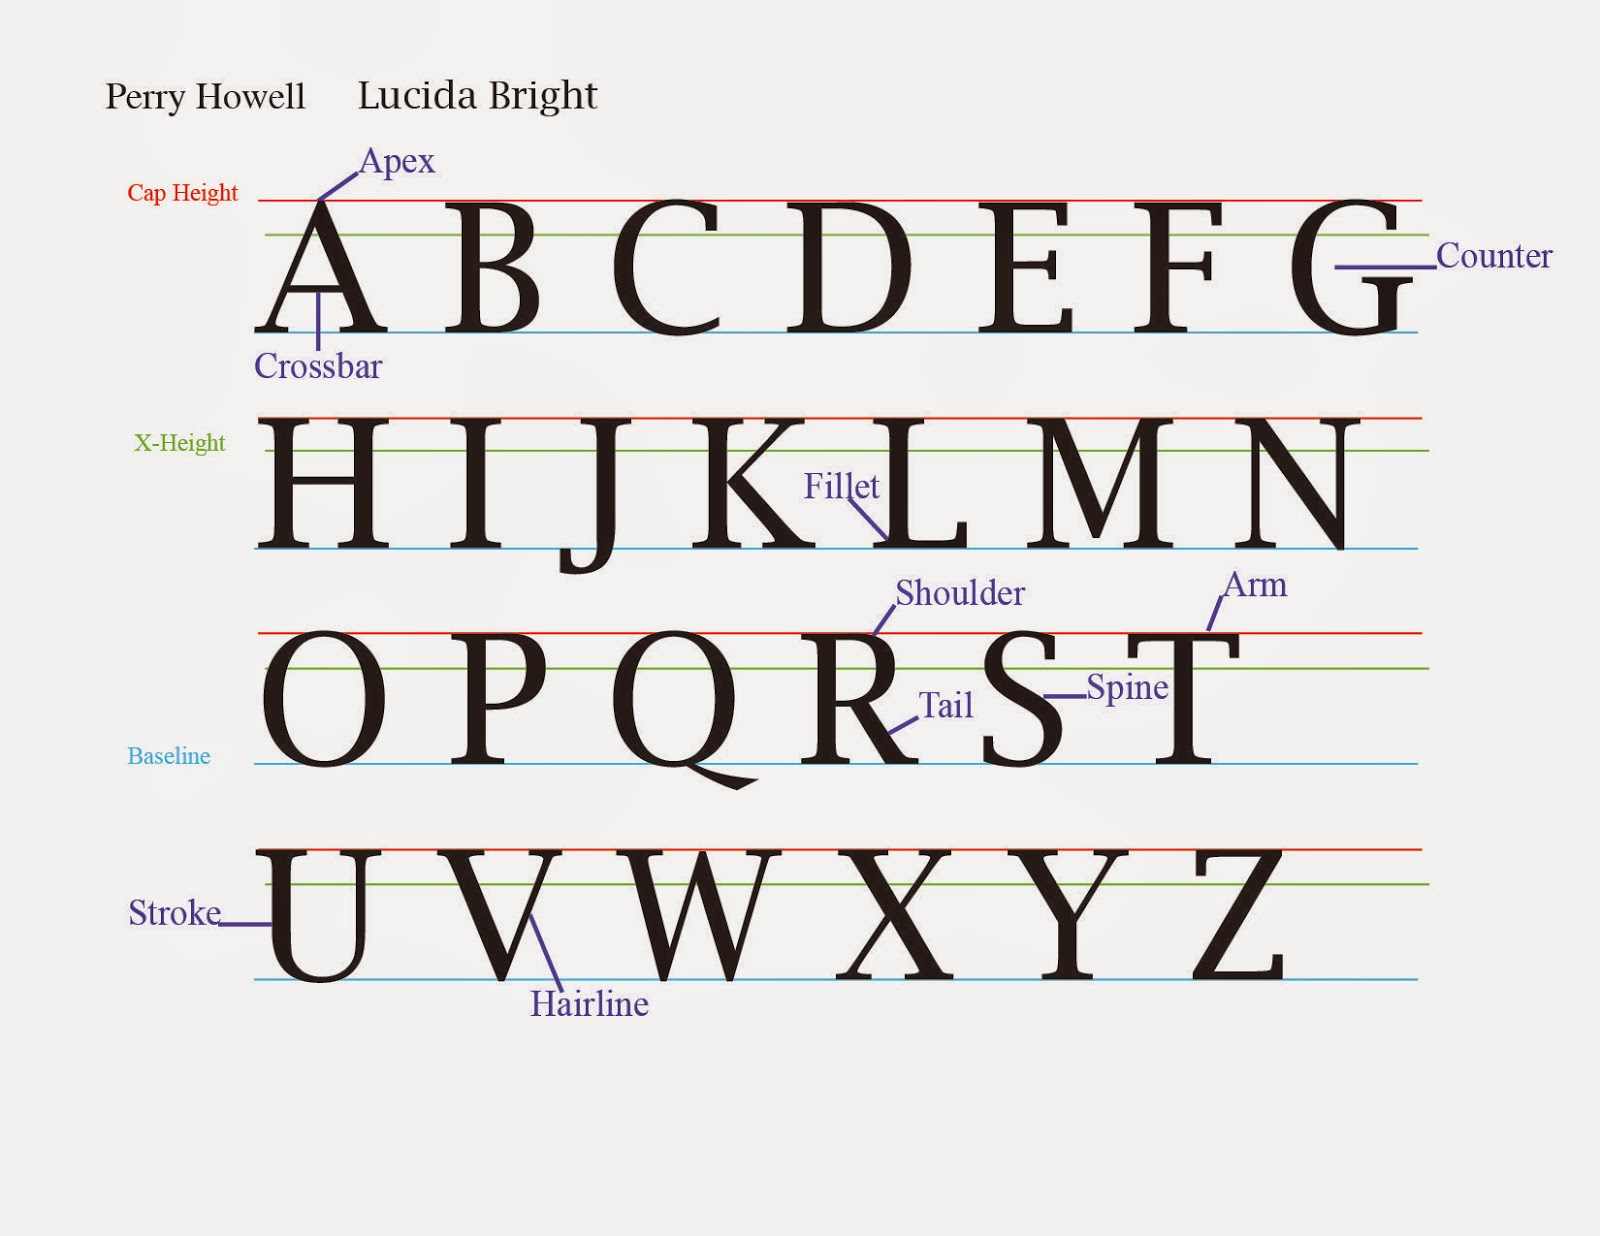 Punch Buggy Car >> TypographyWinter2014: Type Anatomy Howell